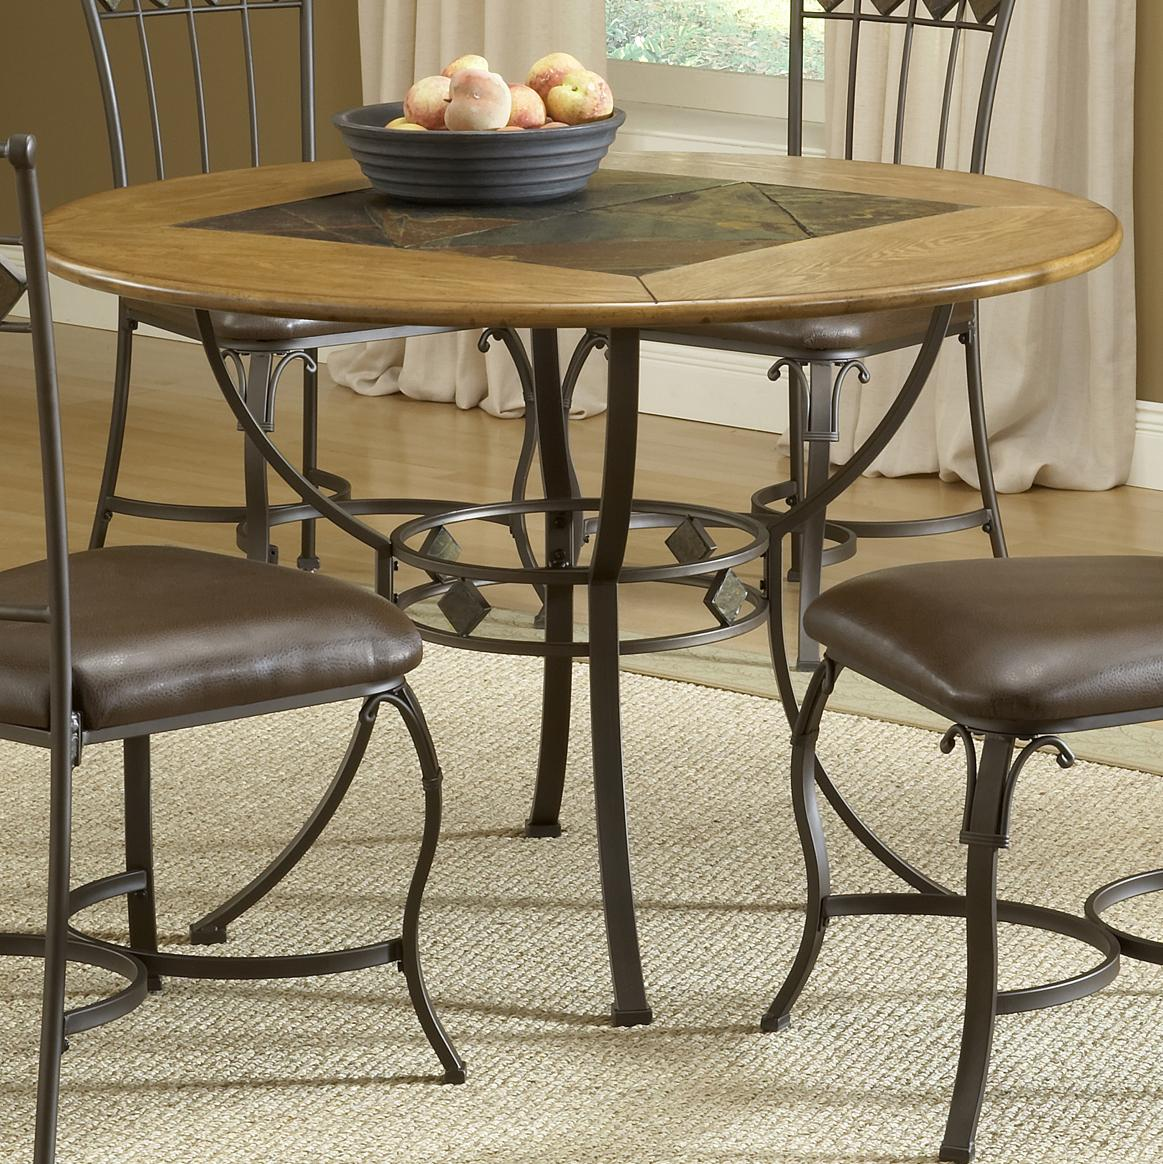 Hillsdale Lakeview Round Wood & Stone Top Dining Table - Item Number: 4264DTBRD